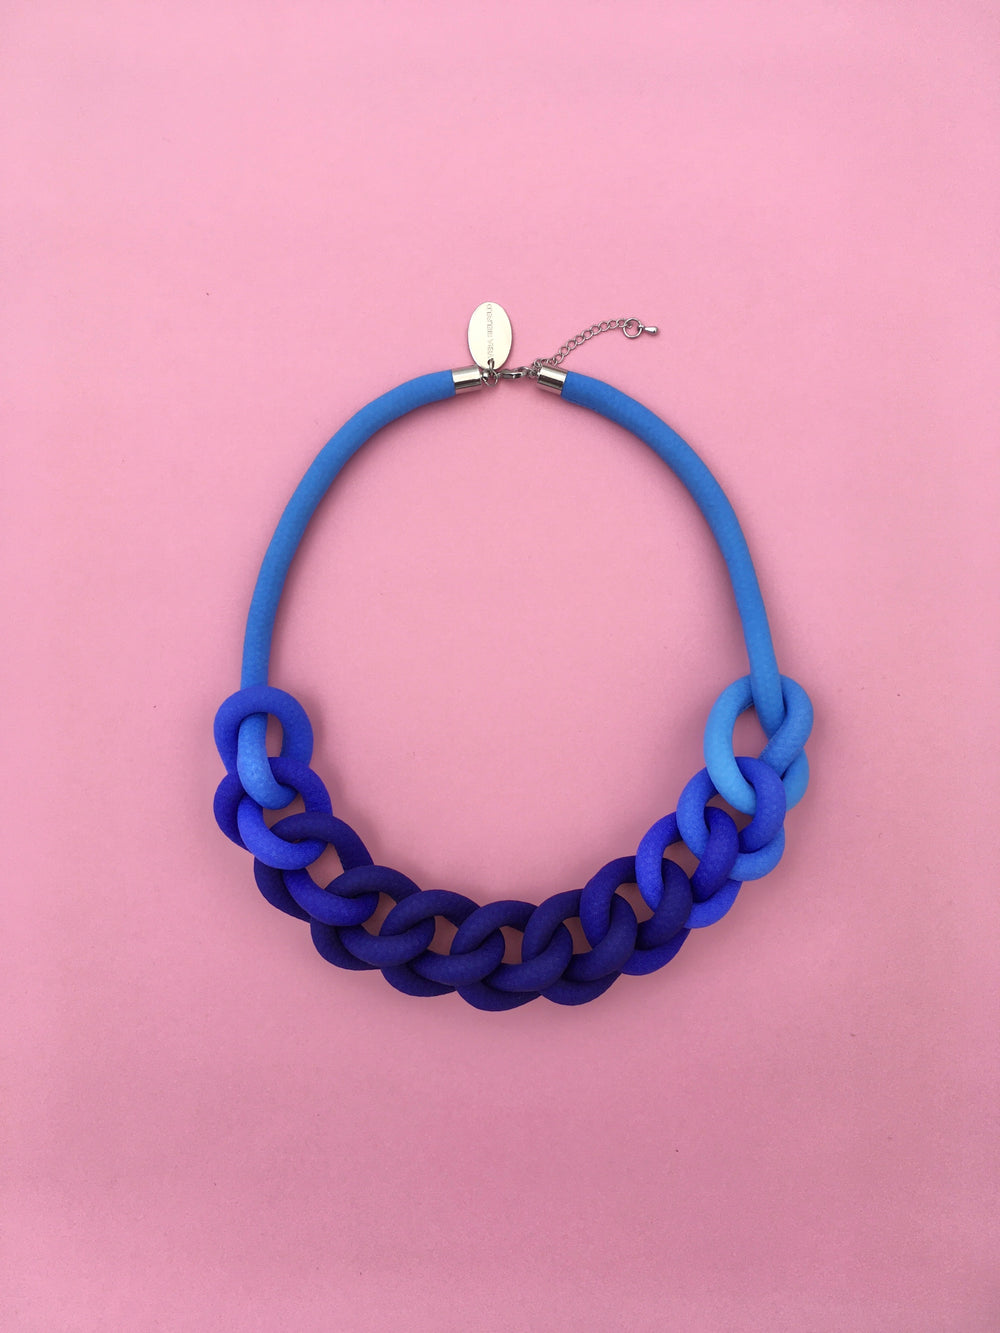 COLLAR CADENA degradé azul